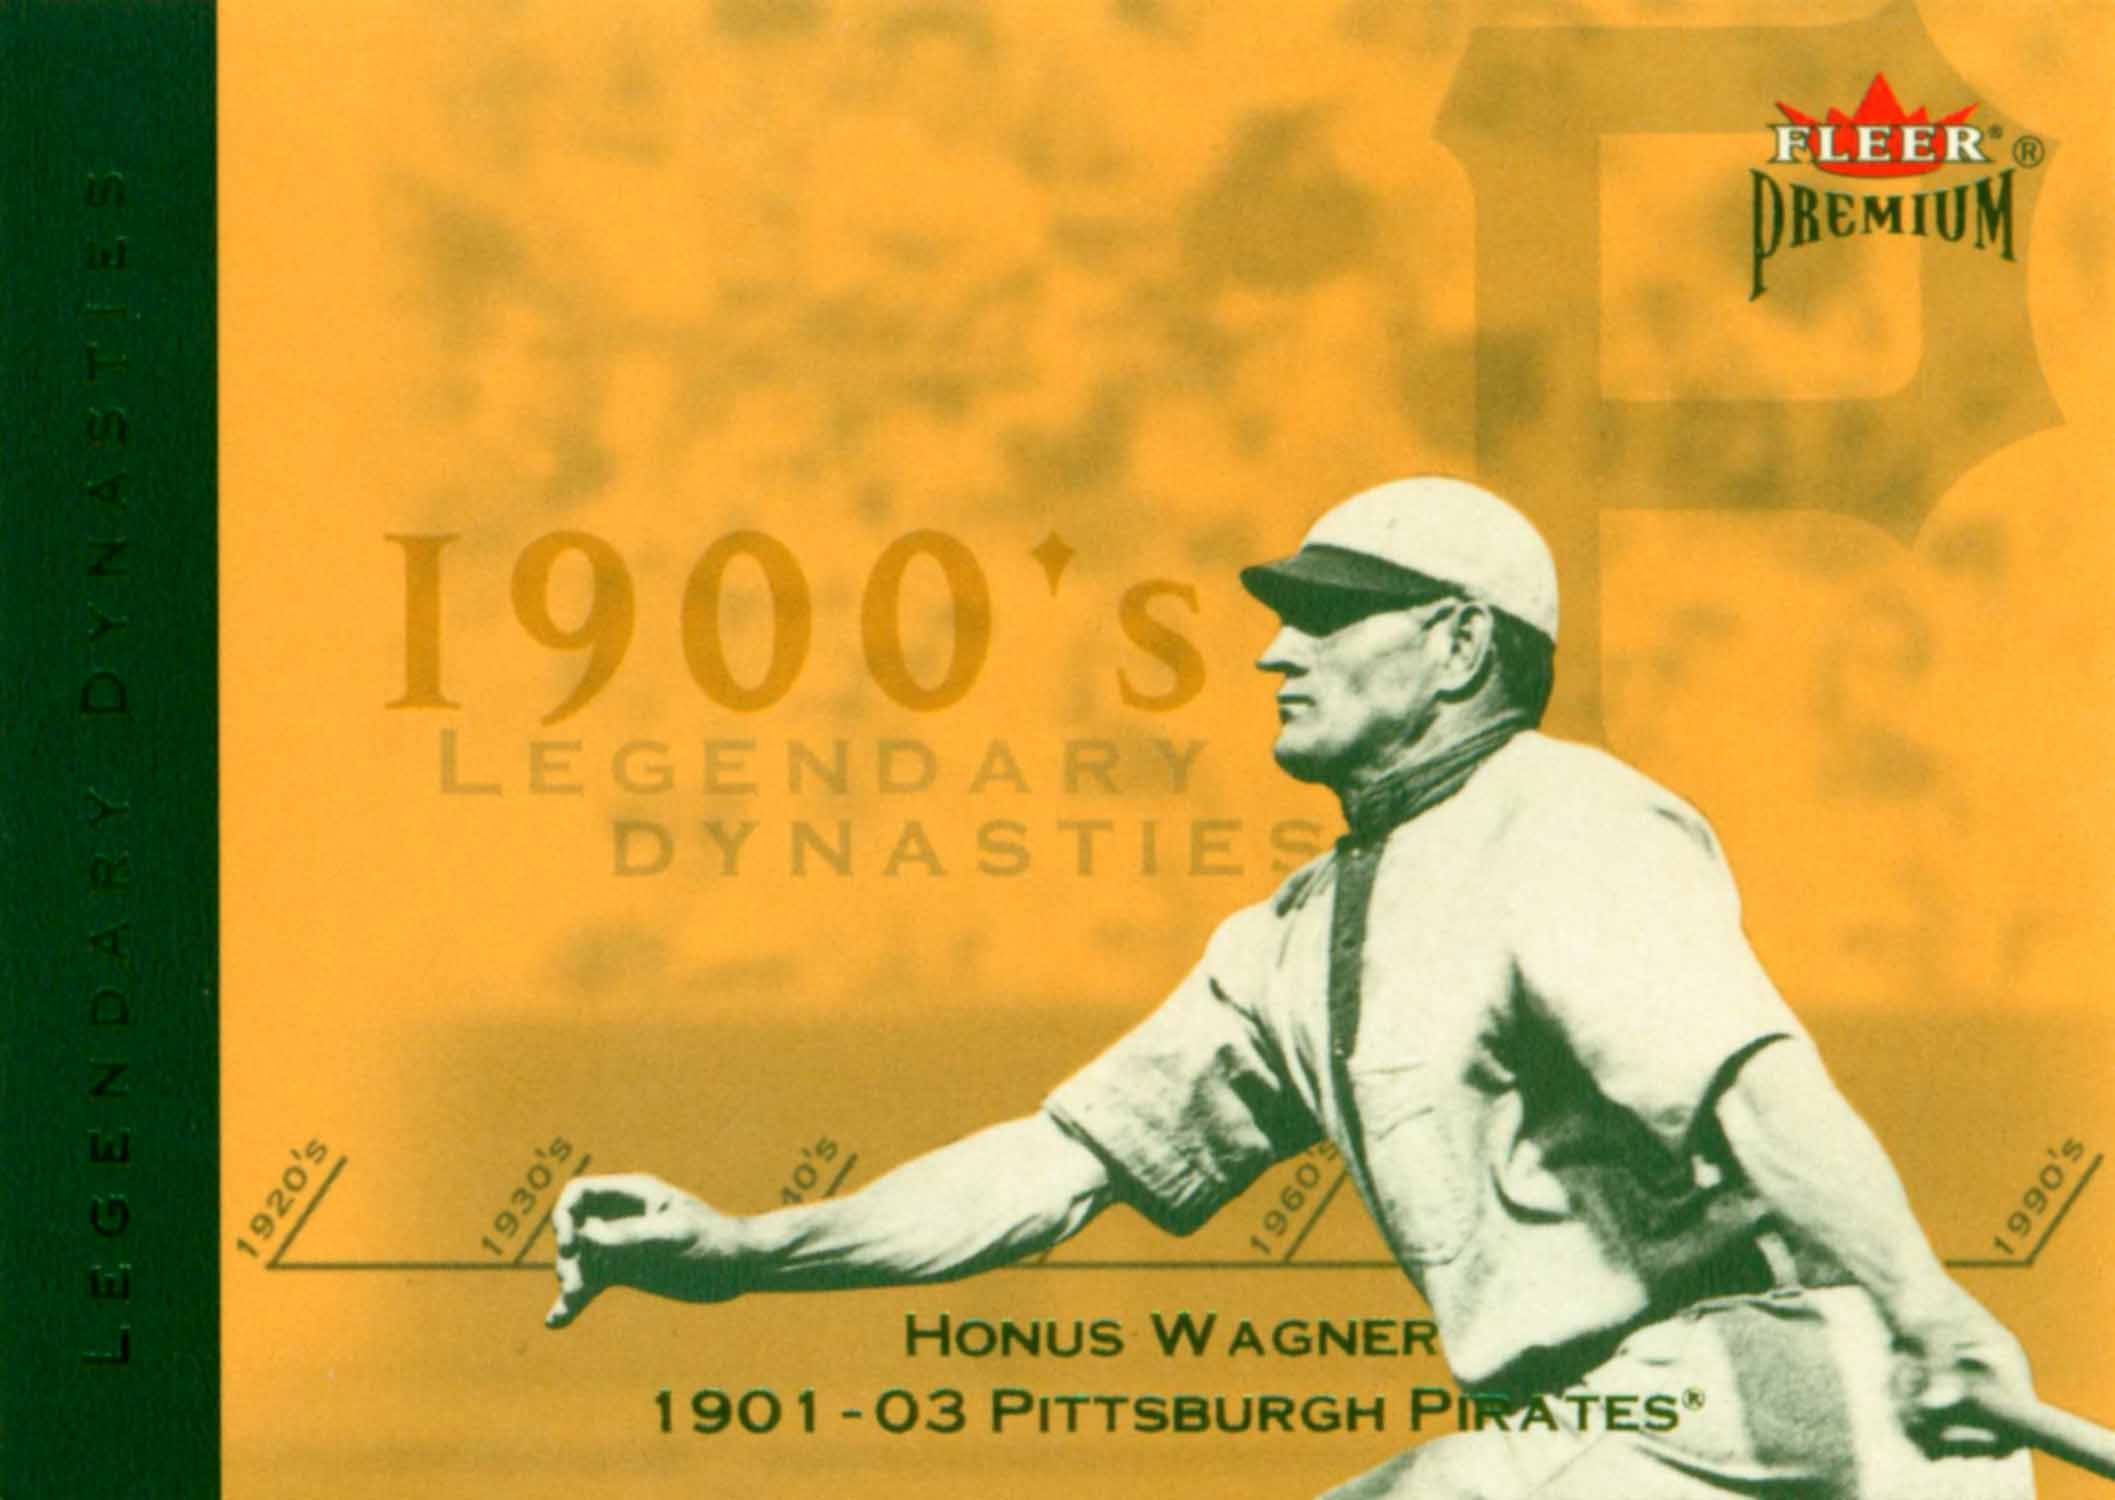 2002 Fleer Premium Legendary Dynasties